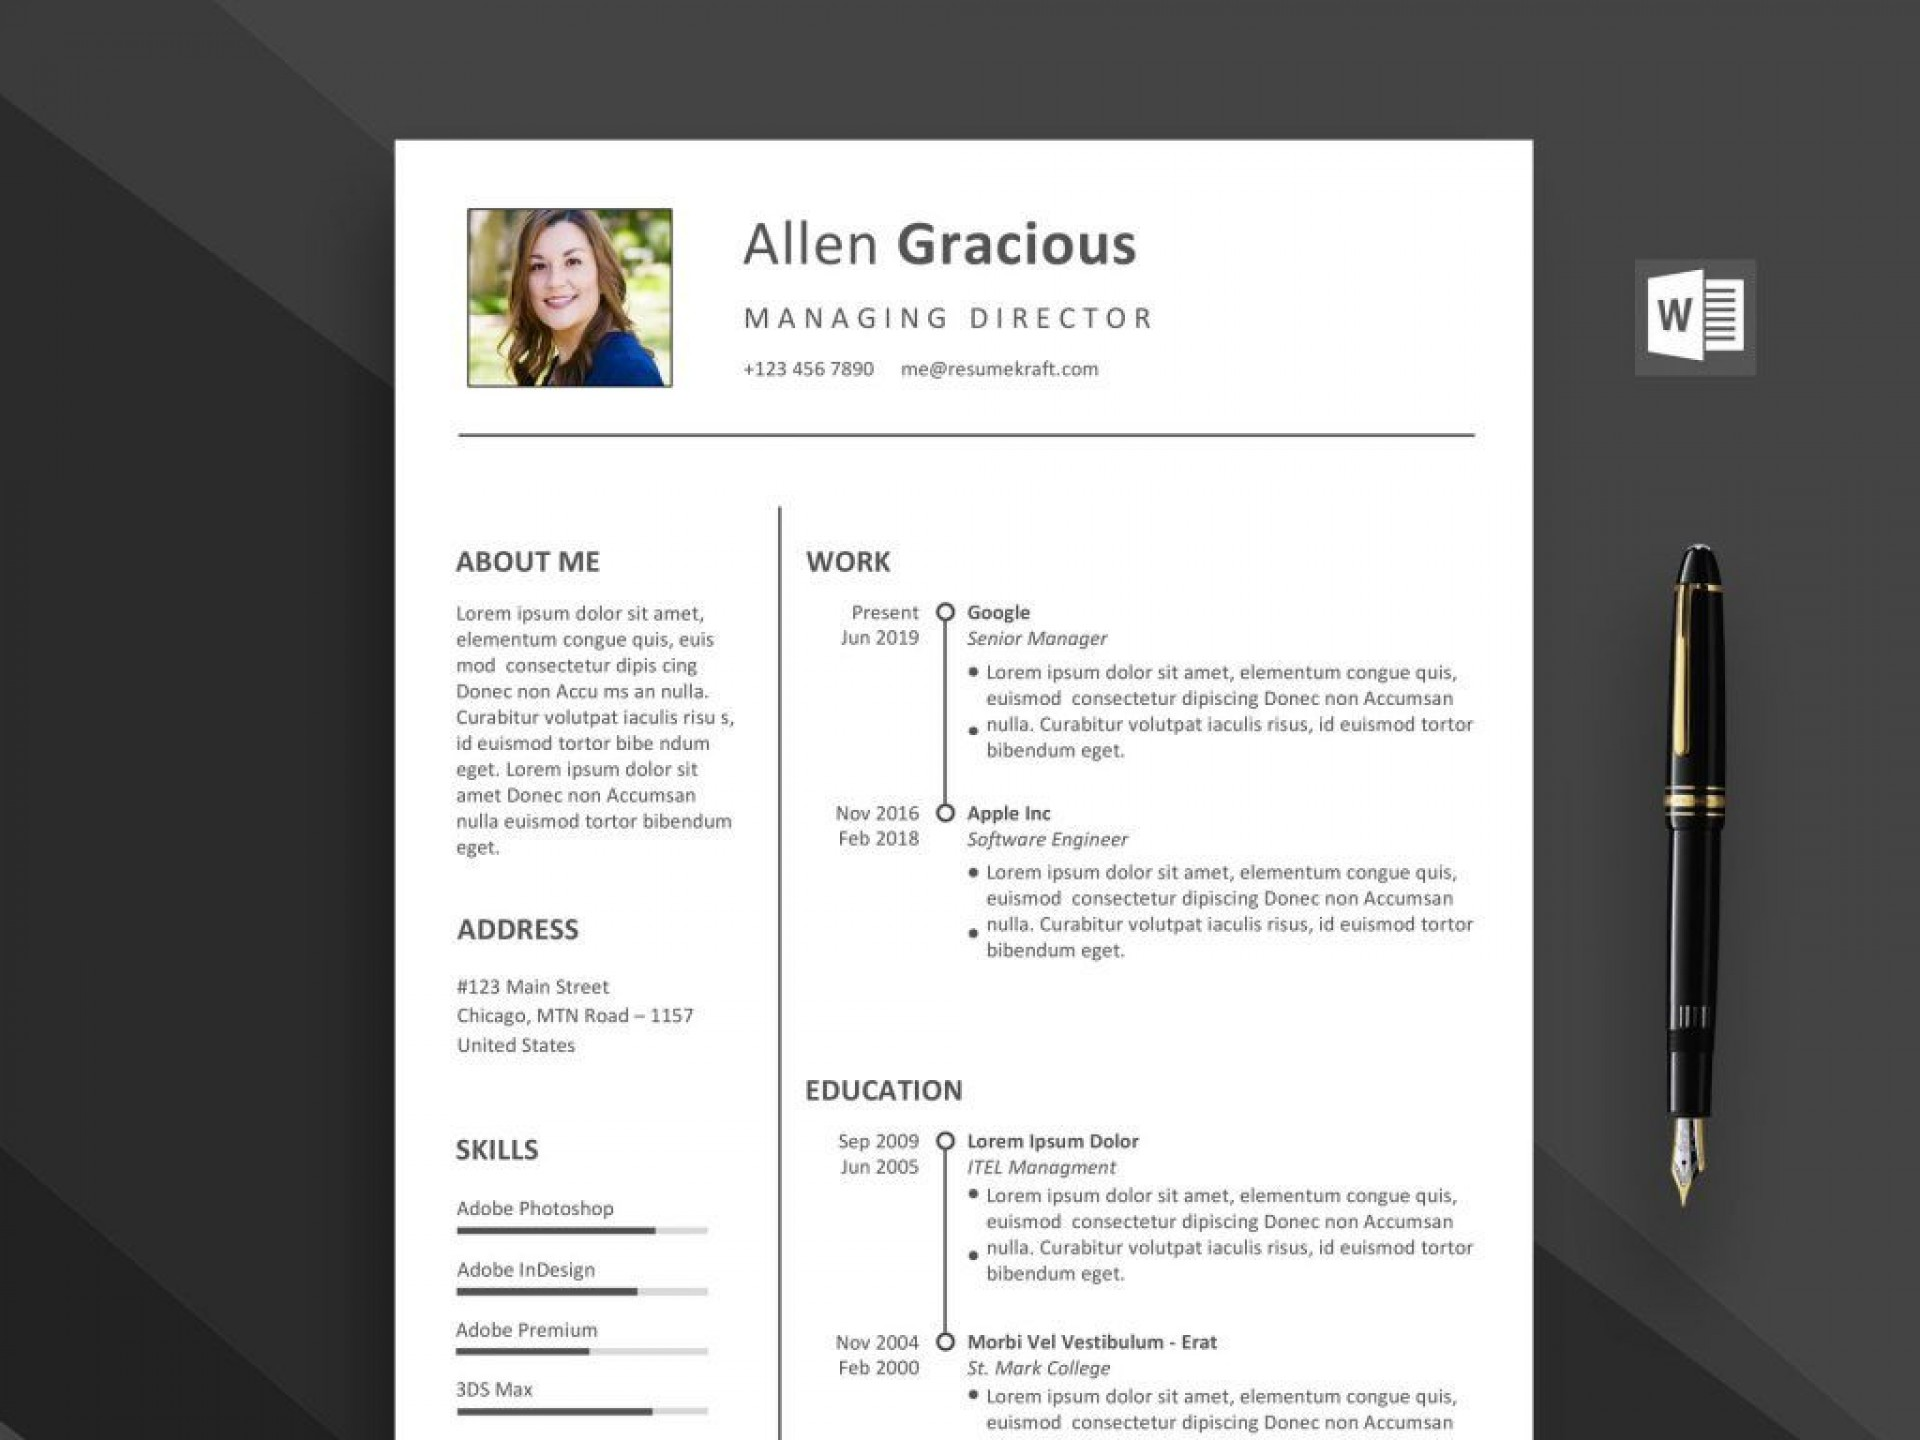 003 Incredible Word Cv Template Free Download Highest Clarity  2020 Design Document For Student1920